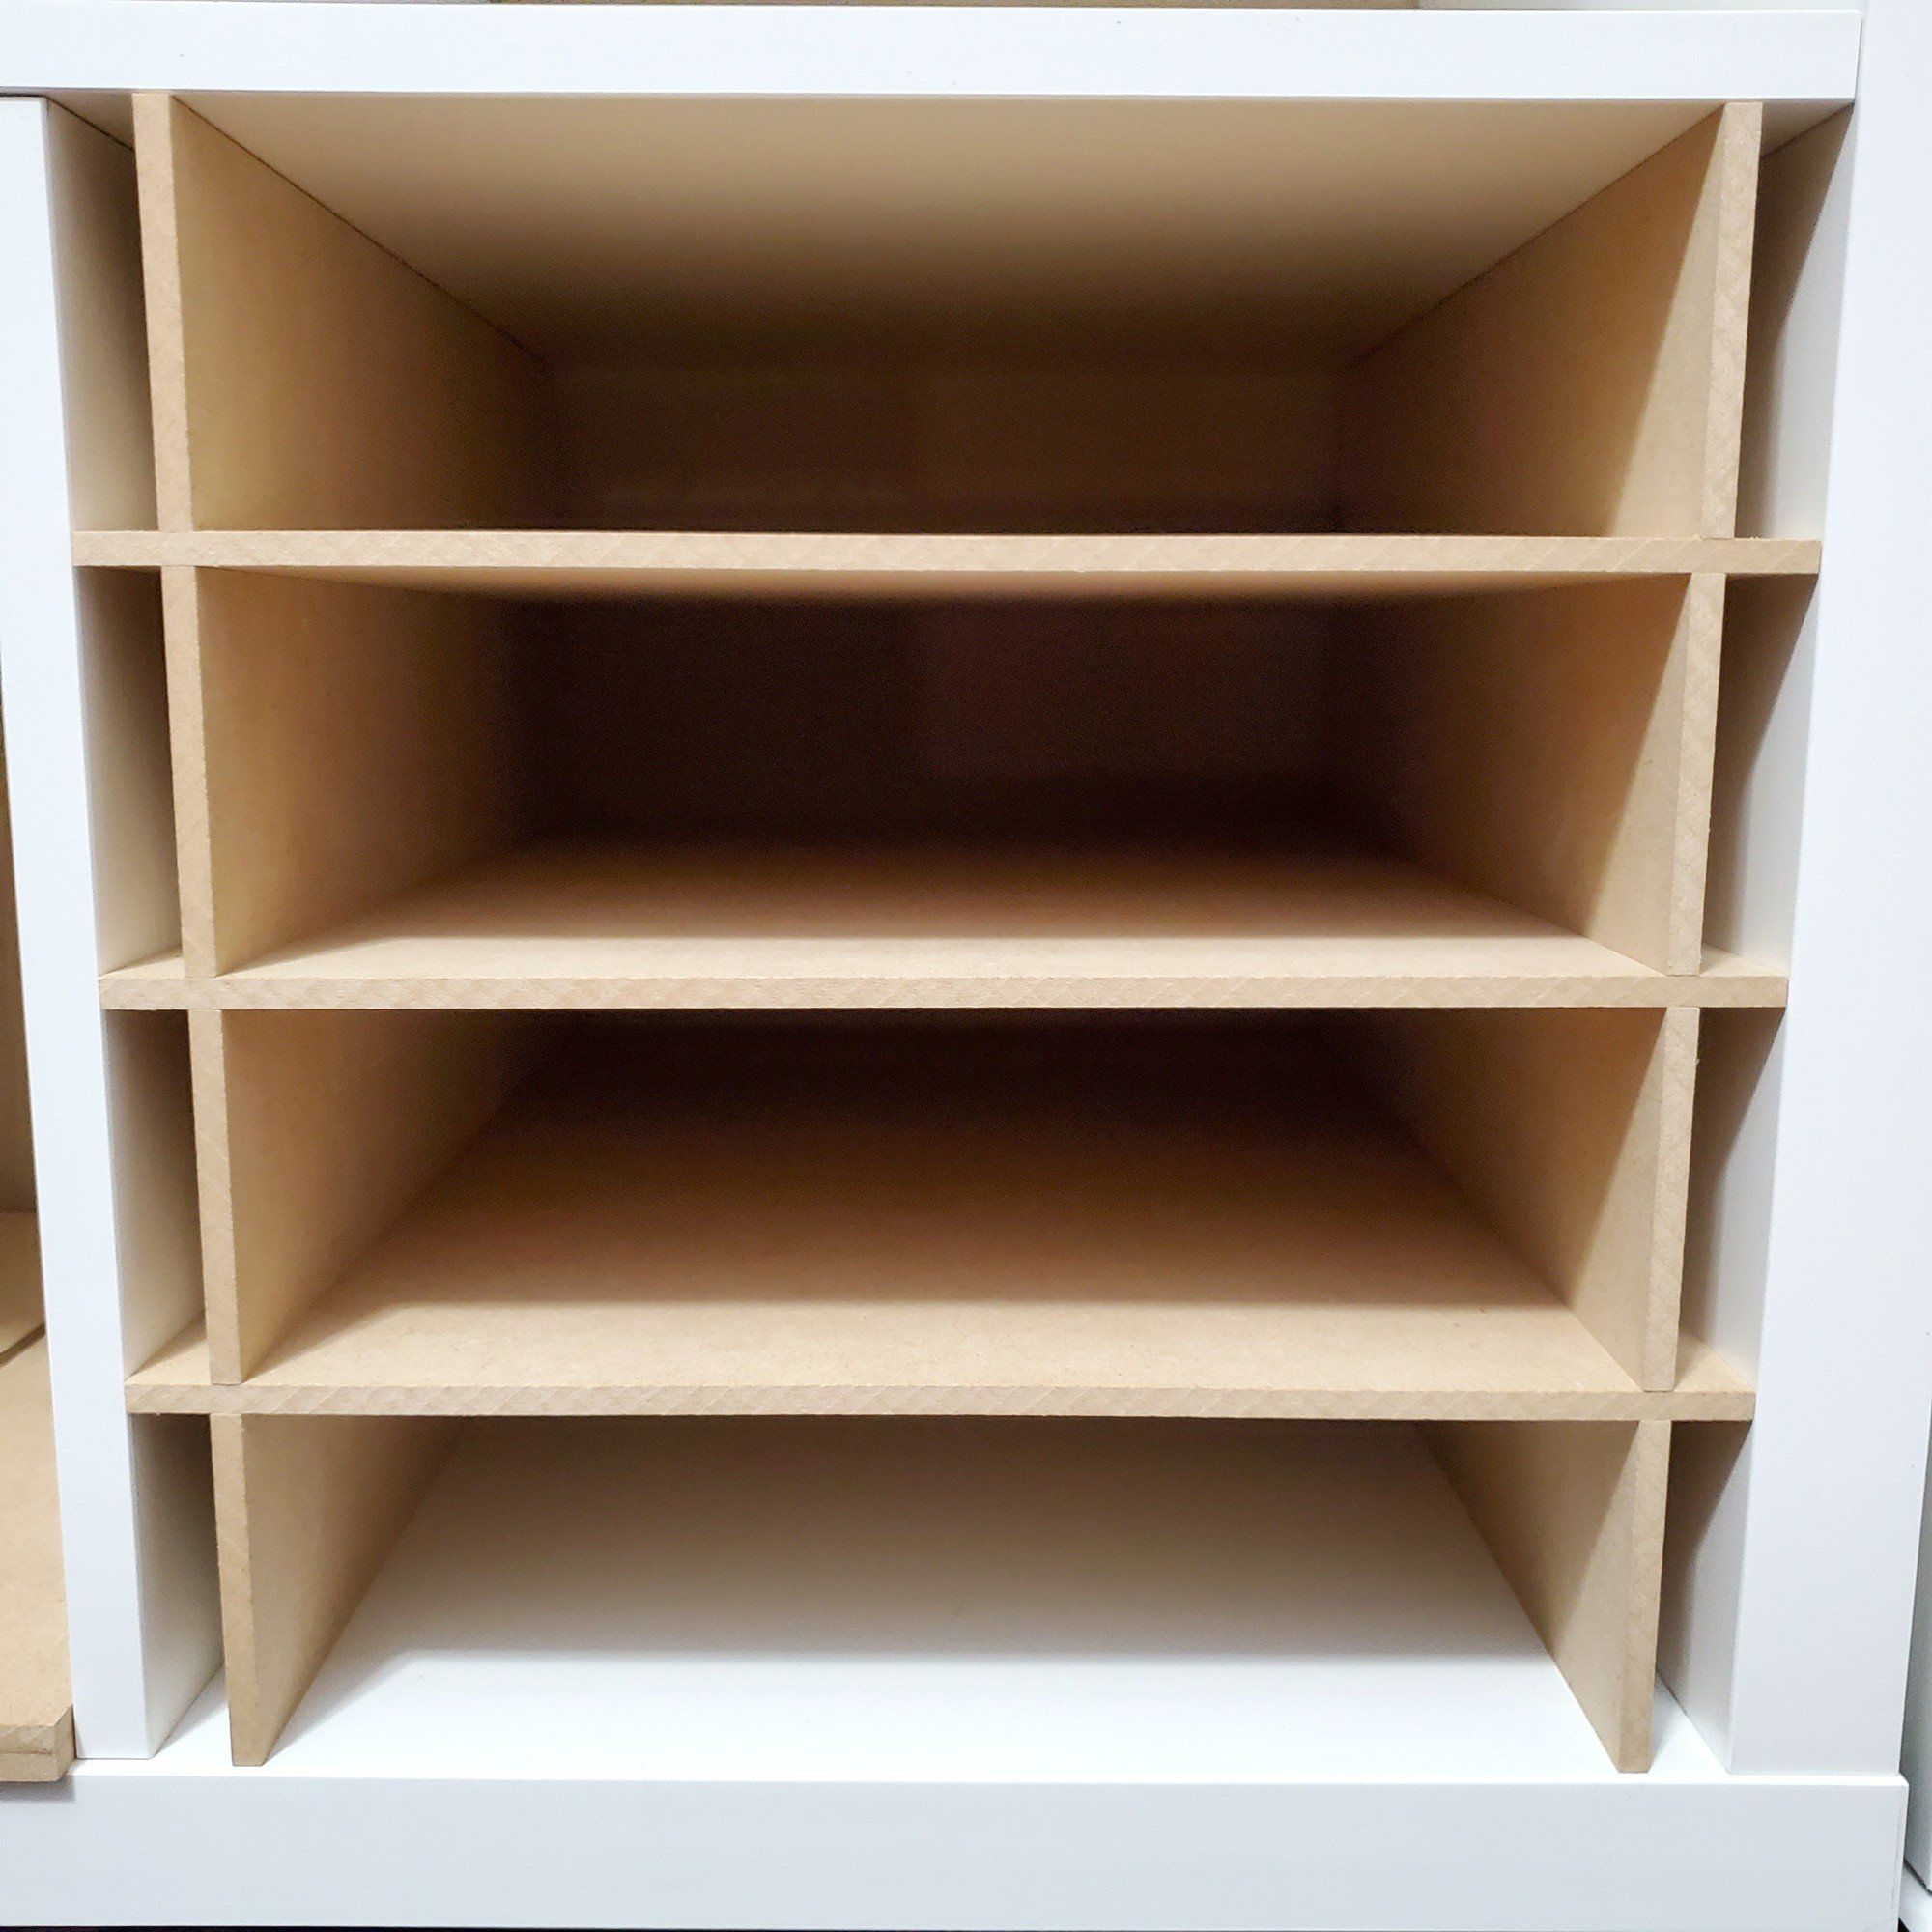 3 7 Cubby Paper Organizer Cube Insert For Cube Storage Shelves Cube Storage Cube Storage Shelves Storage Shelves